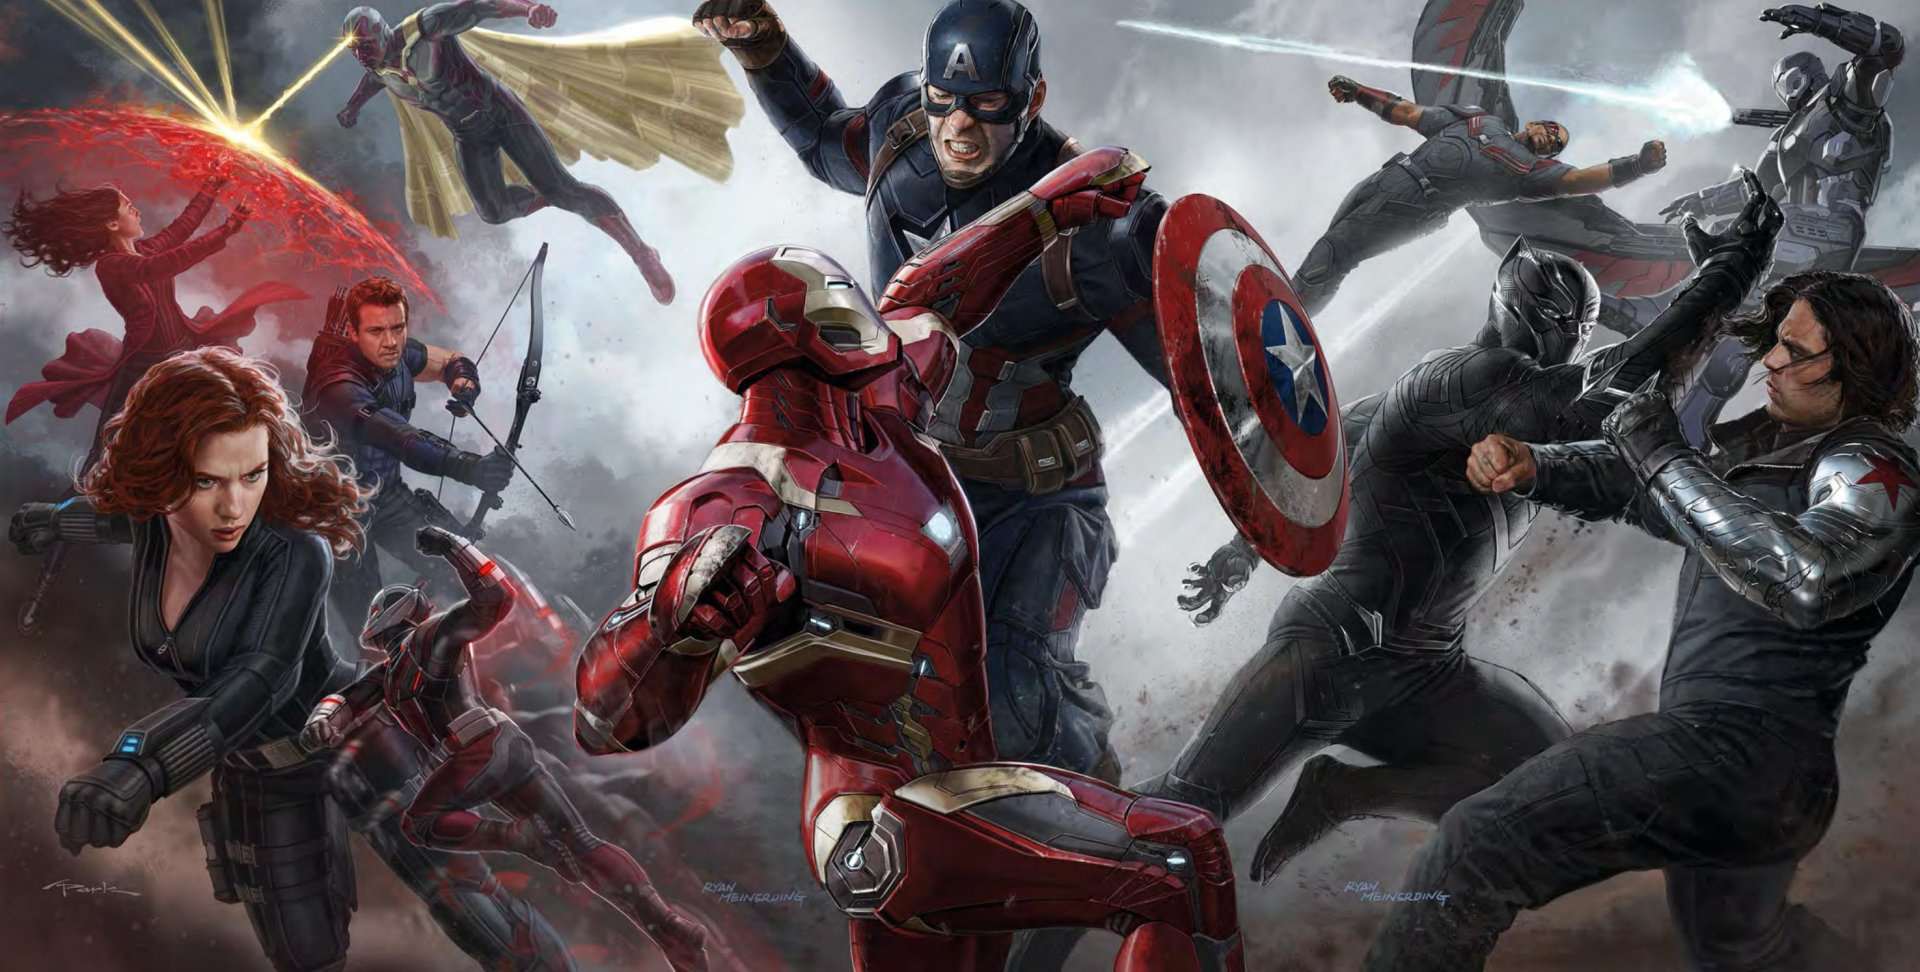 Movie - Captain America: Civil War  Iron Man Captain America Ant-Man Black Widow Natasha Romanoff Black Panther (Marvel Comics) Winter Soldier Falcon (Marvel Comics) Hawkeye Vision (Marvel Comics) Scarlet Witch War Machine Wallpaper